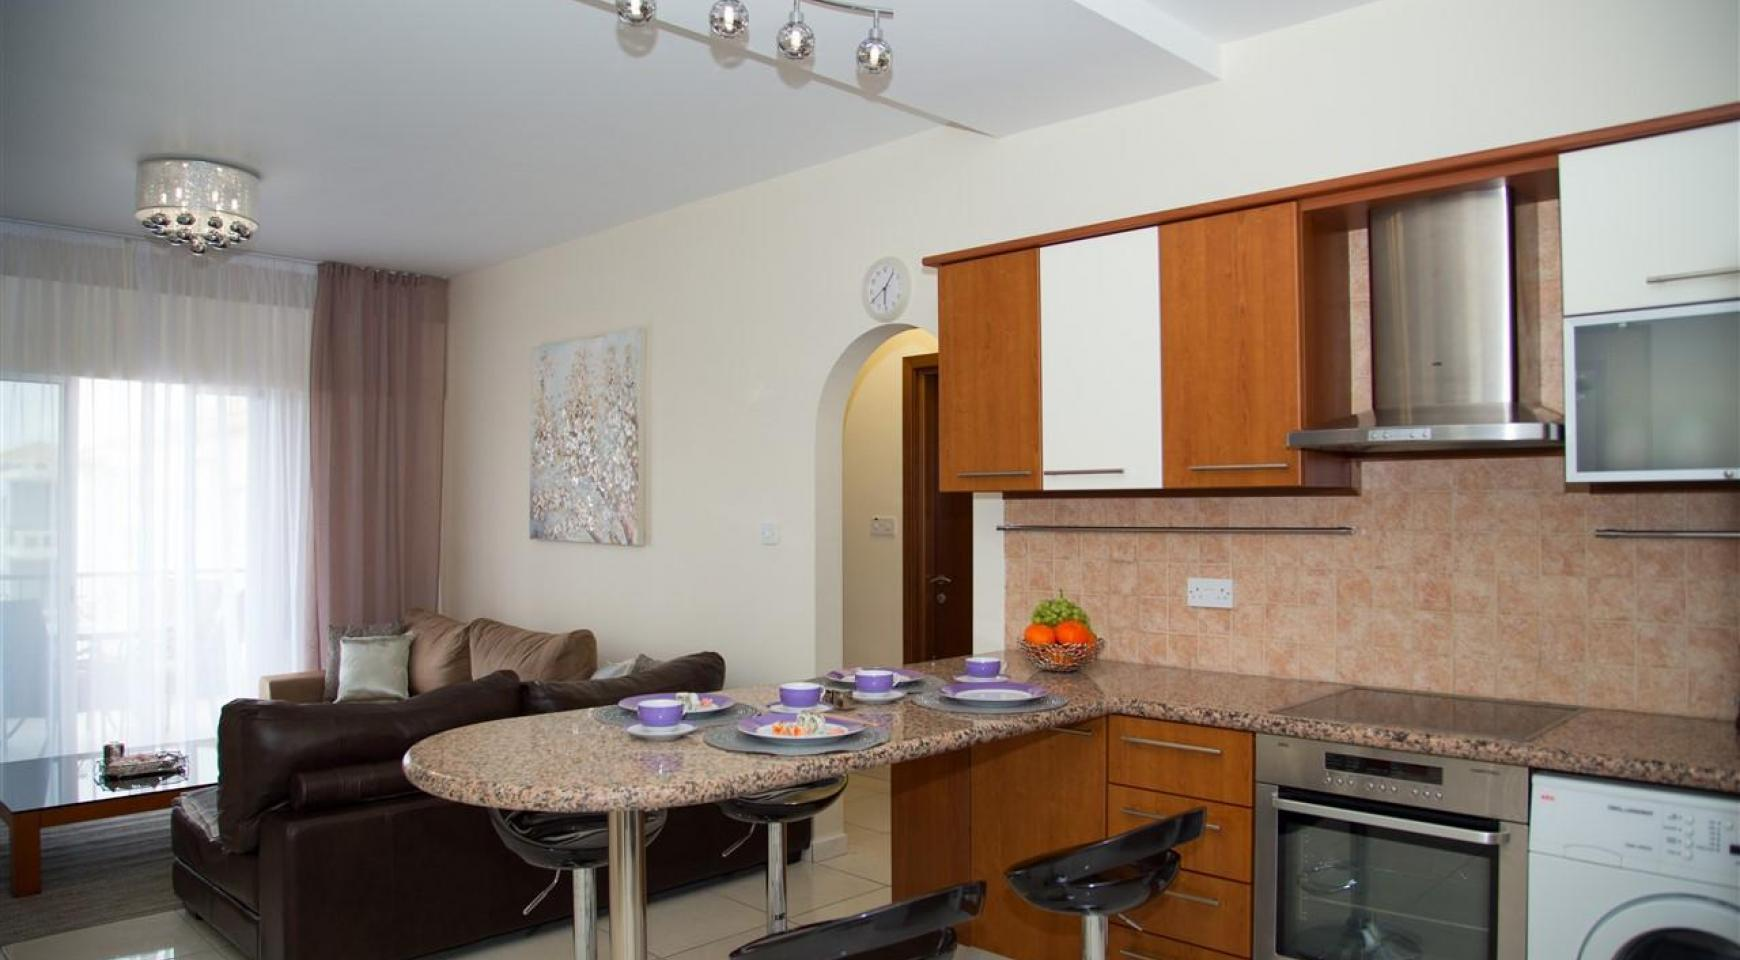 2 Bedroom Apartment in the Complex near the Sea - 8